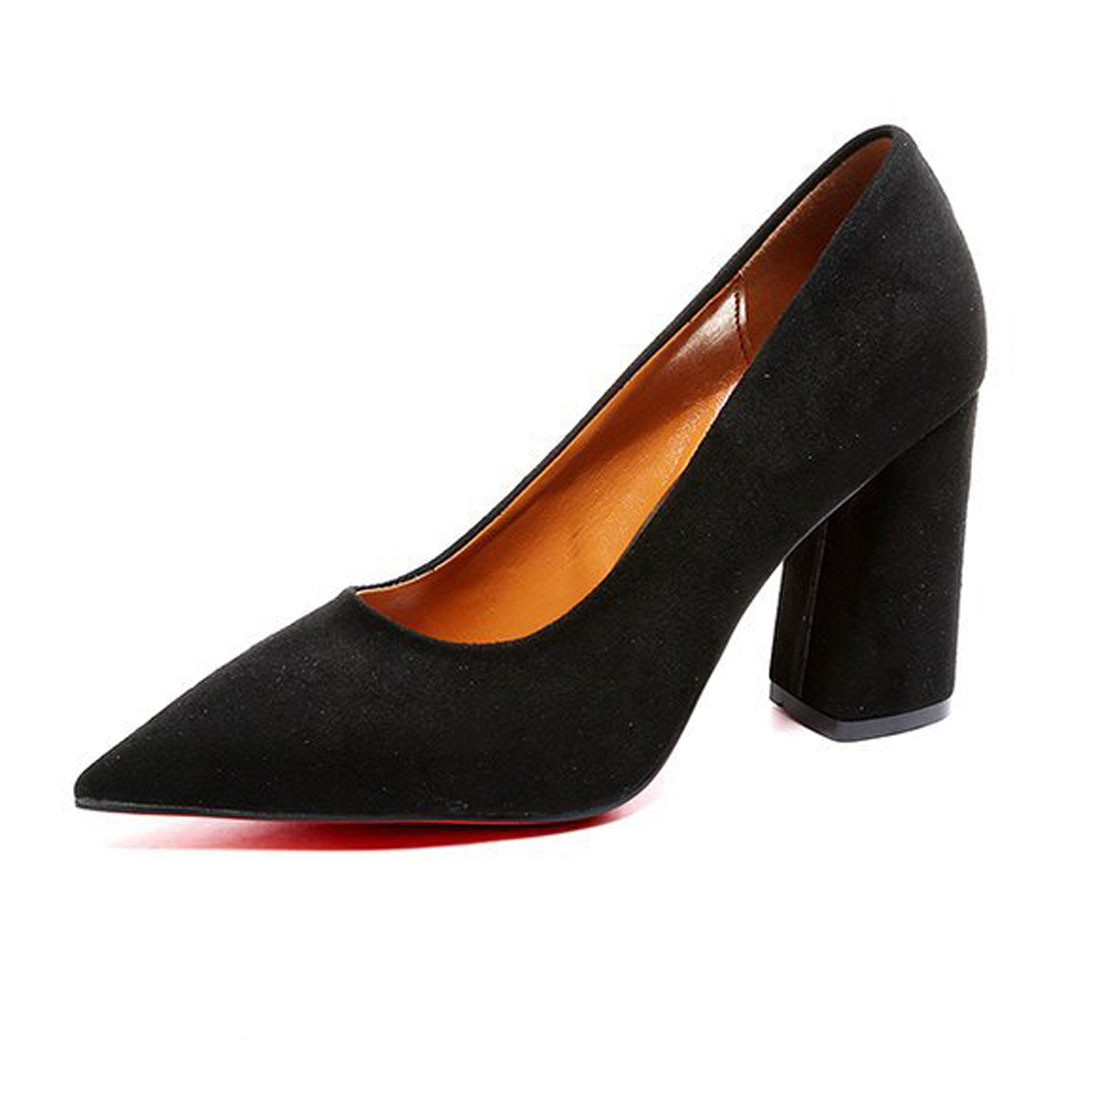 Faux Suede Pointed Toe Slip-on High Heels Shoes Women Pumps New Style Ladies Sexy Chunky Block office women shoes high heel black basic slip on pumps sexy women pointed toe faux suede high heels 8cm d orsay for office dress size 4 16 us fsj